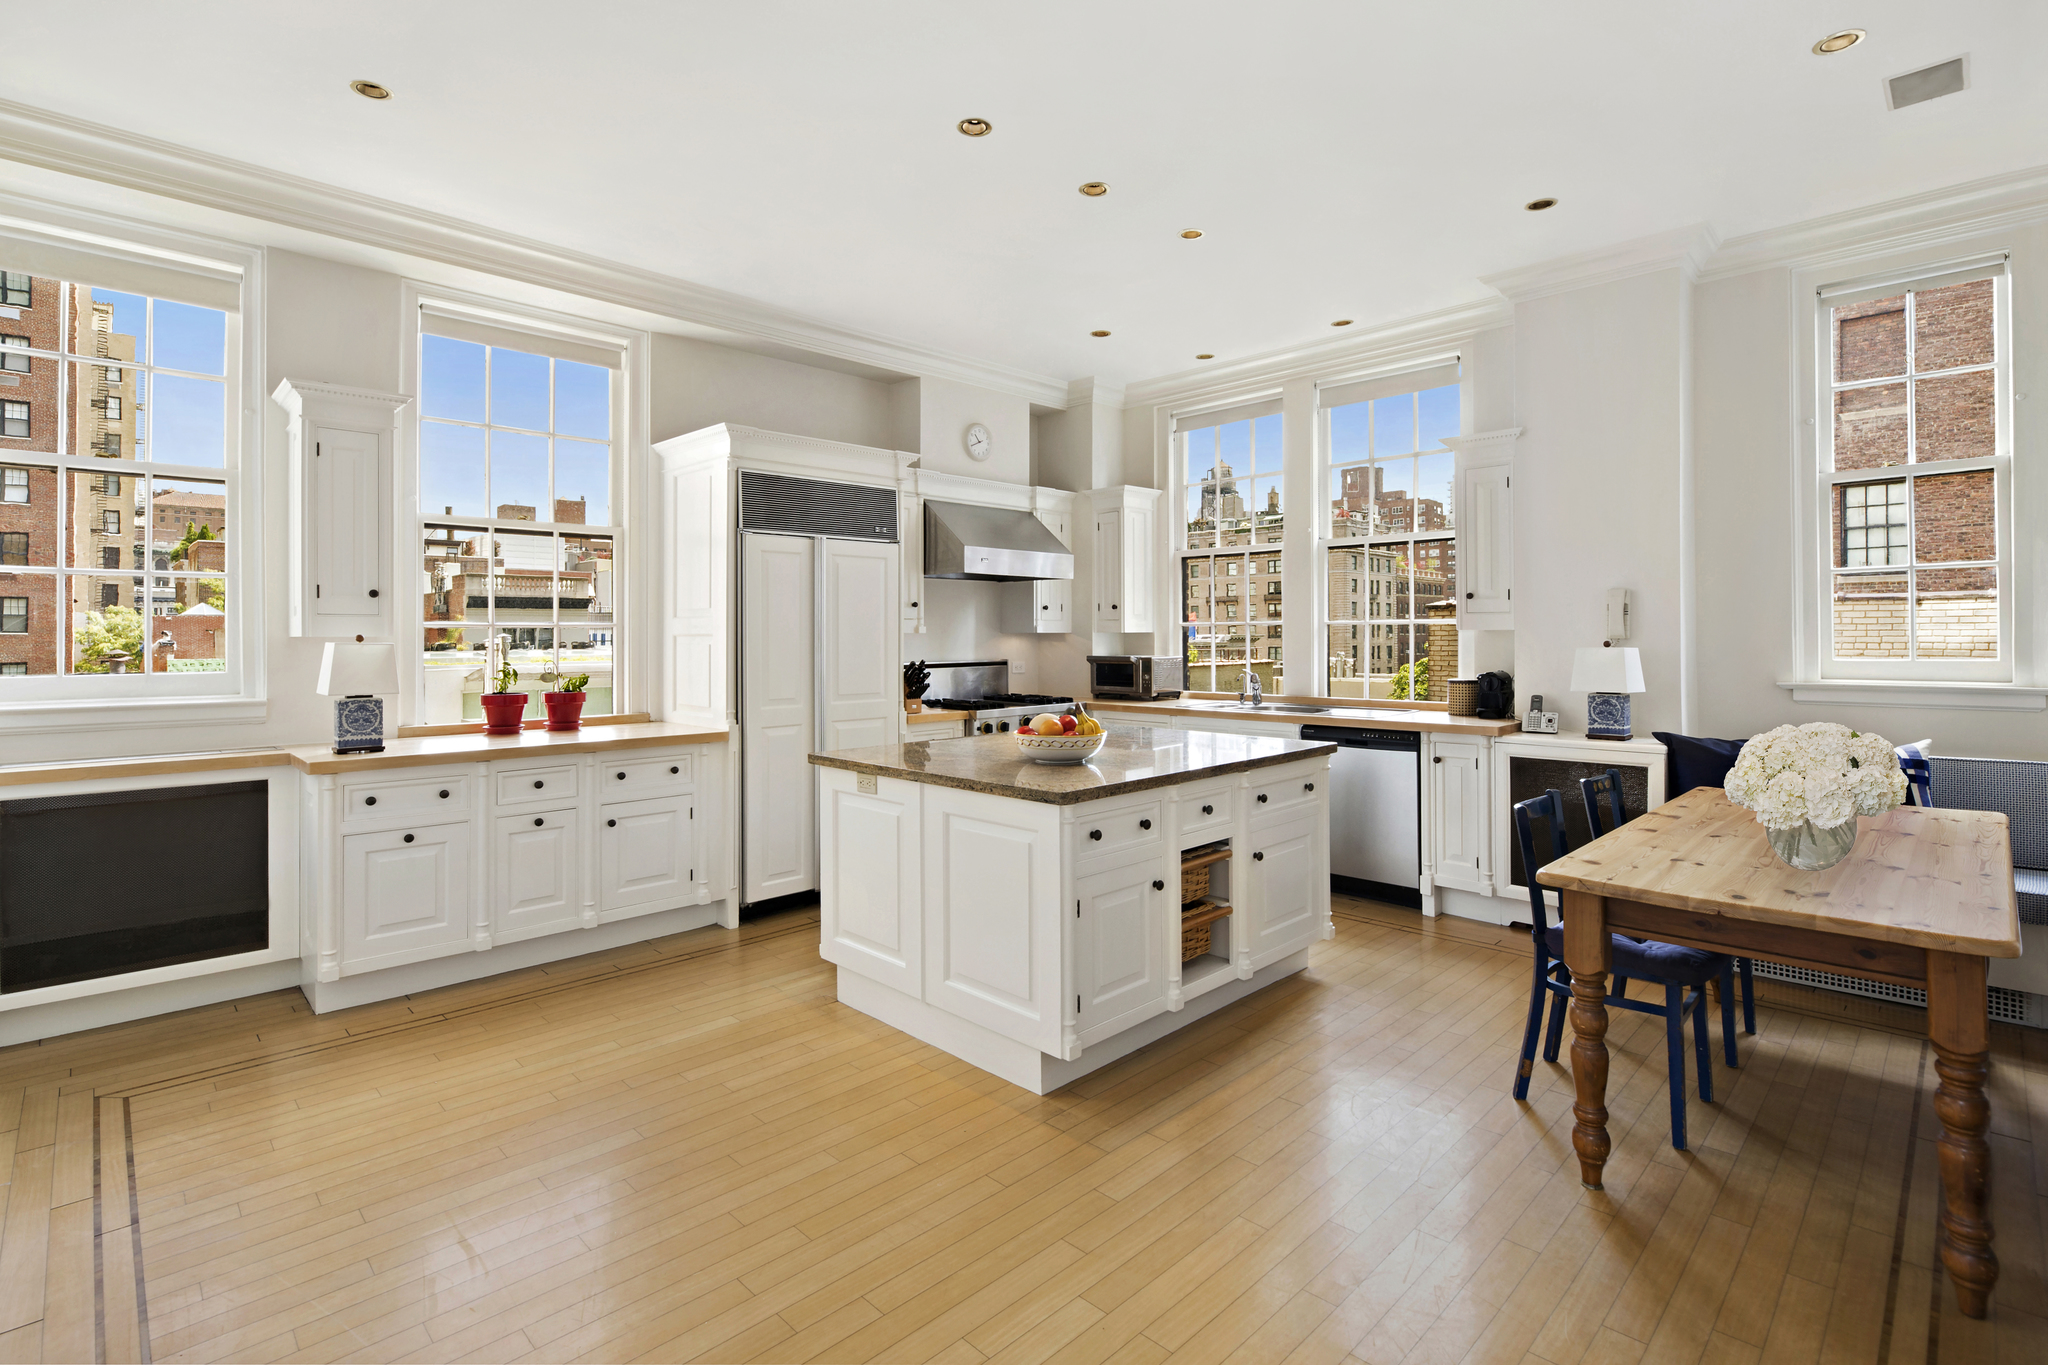 This grand apartment, located at 765 Park Avenue and 72nd Street in the prestigious Lenox Hill neighborhood, is in one of Park Avenue's most refined and beautiful white-glove prewar cooperatives. The stylish apartment, recently refurbished throughout, offers light-filled and spacious accommodations in 4 bedrooms, with 4 en-suite bathrooms, plus an en-suite staff bedroom. Impressively laid out over 3,550 sq. ft. with 20 splendid windows with views over three aspects, the traditional apartment offers gracious living with well-proportioned large rooms, elegant moldings and archways, tall paneled doorways, 10-foot ceilings, and hardwood floors. It is also fully modernized for comfort. A private elevator takes you to the 6th floor and opens to a discreet private entrance hall. The grand hallway leads through to the 22 ft. library, which hosts 